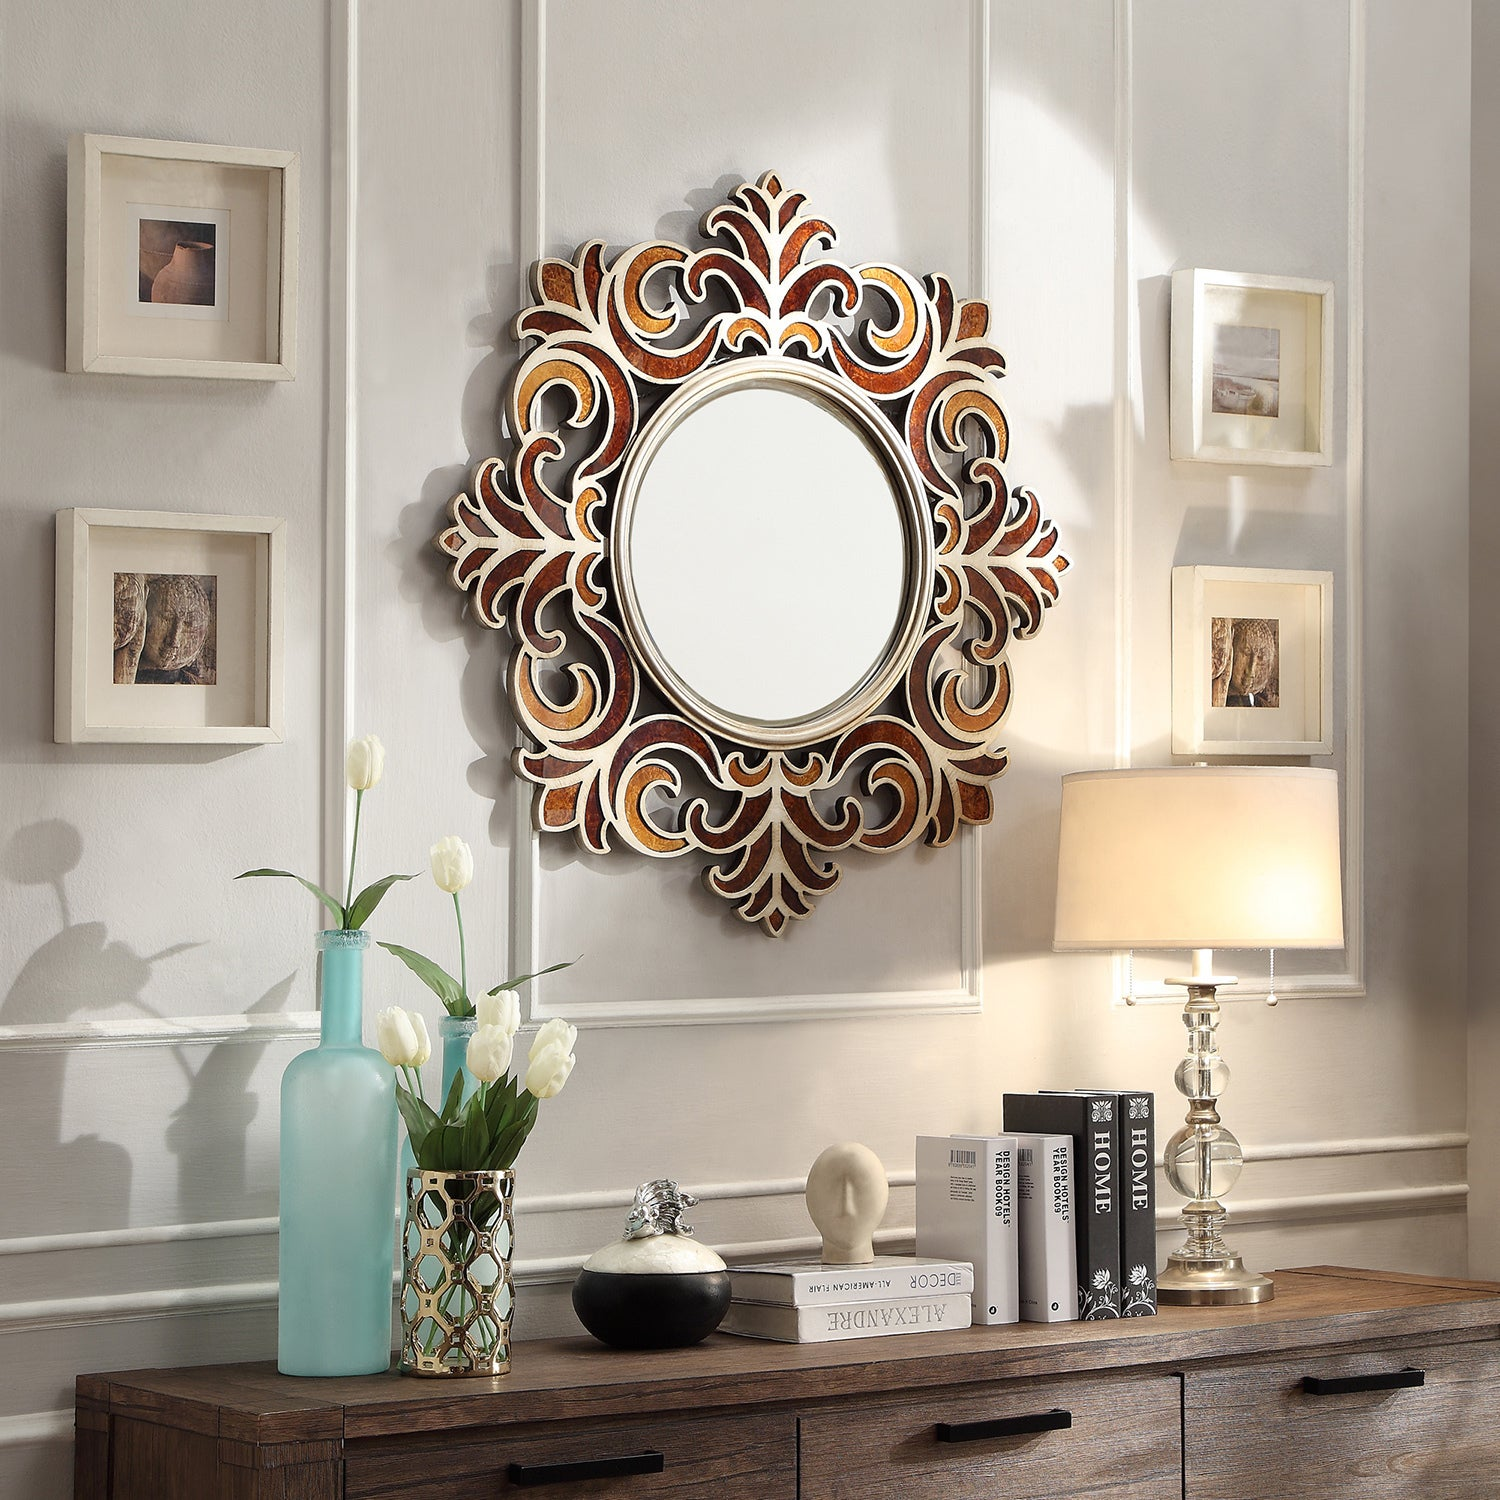 Kiona Roccoco Frame Bronze Finish Accent Wall Mirror - Free Shipping Today  - Overstock.com - 15684133